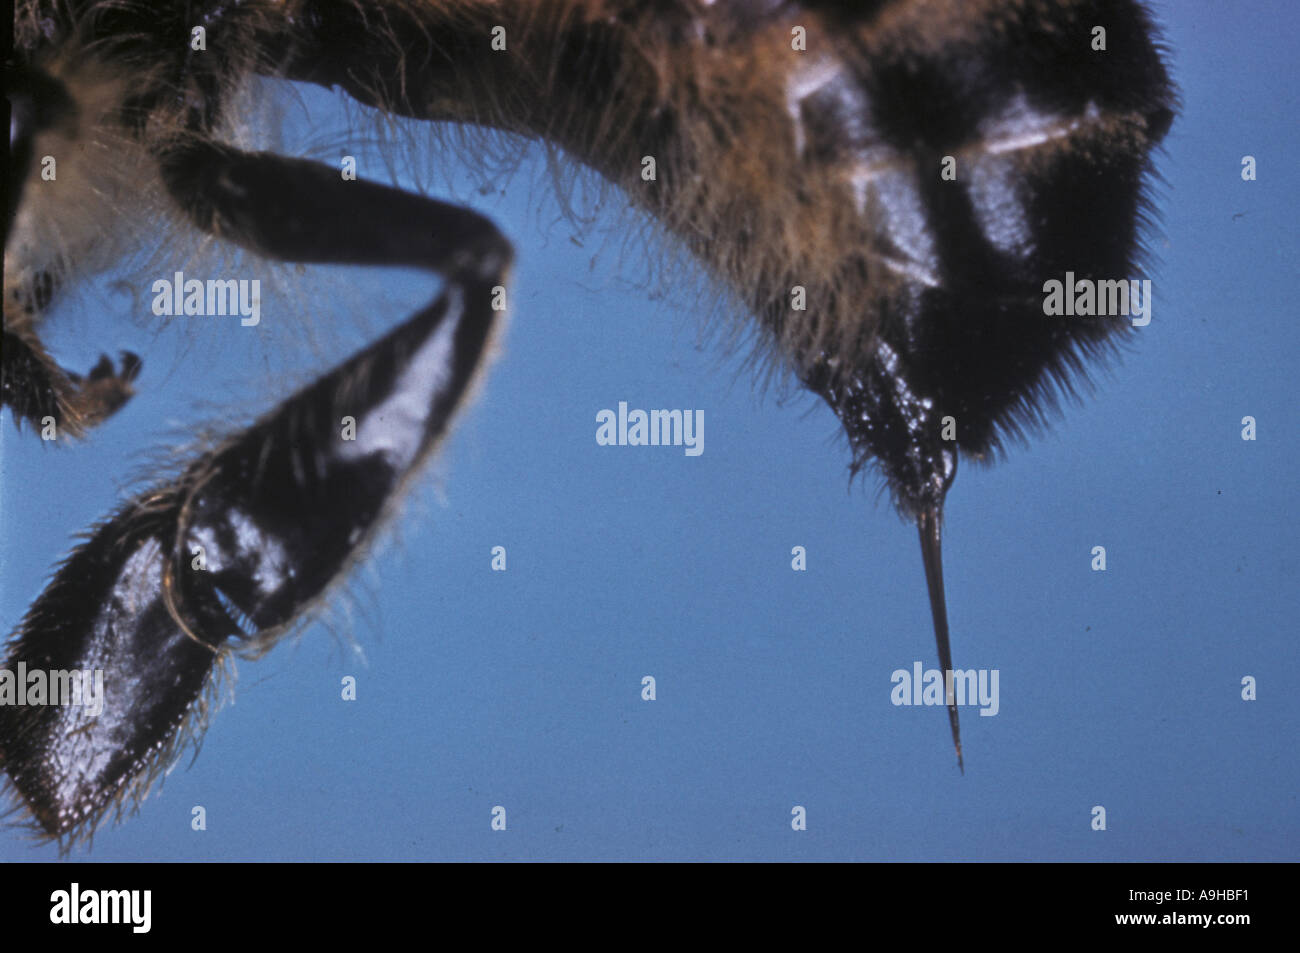 Honey bee Sp Close up showing sting - Stock Image